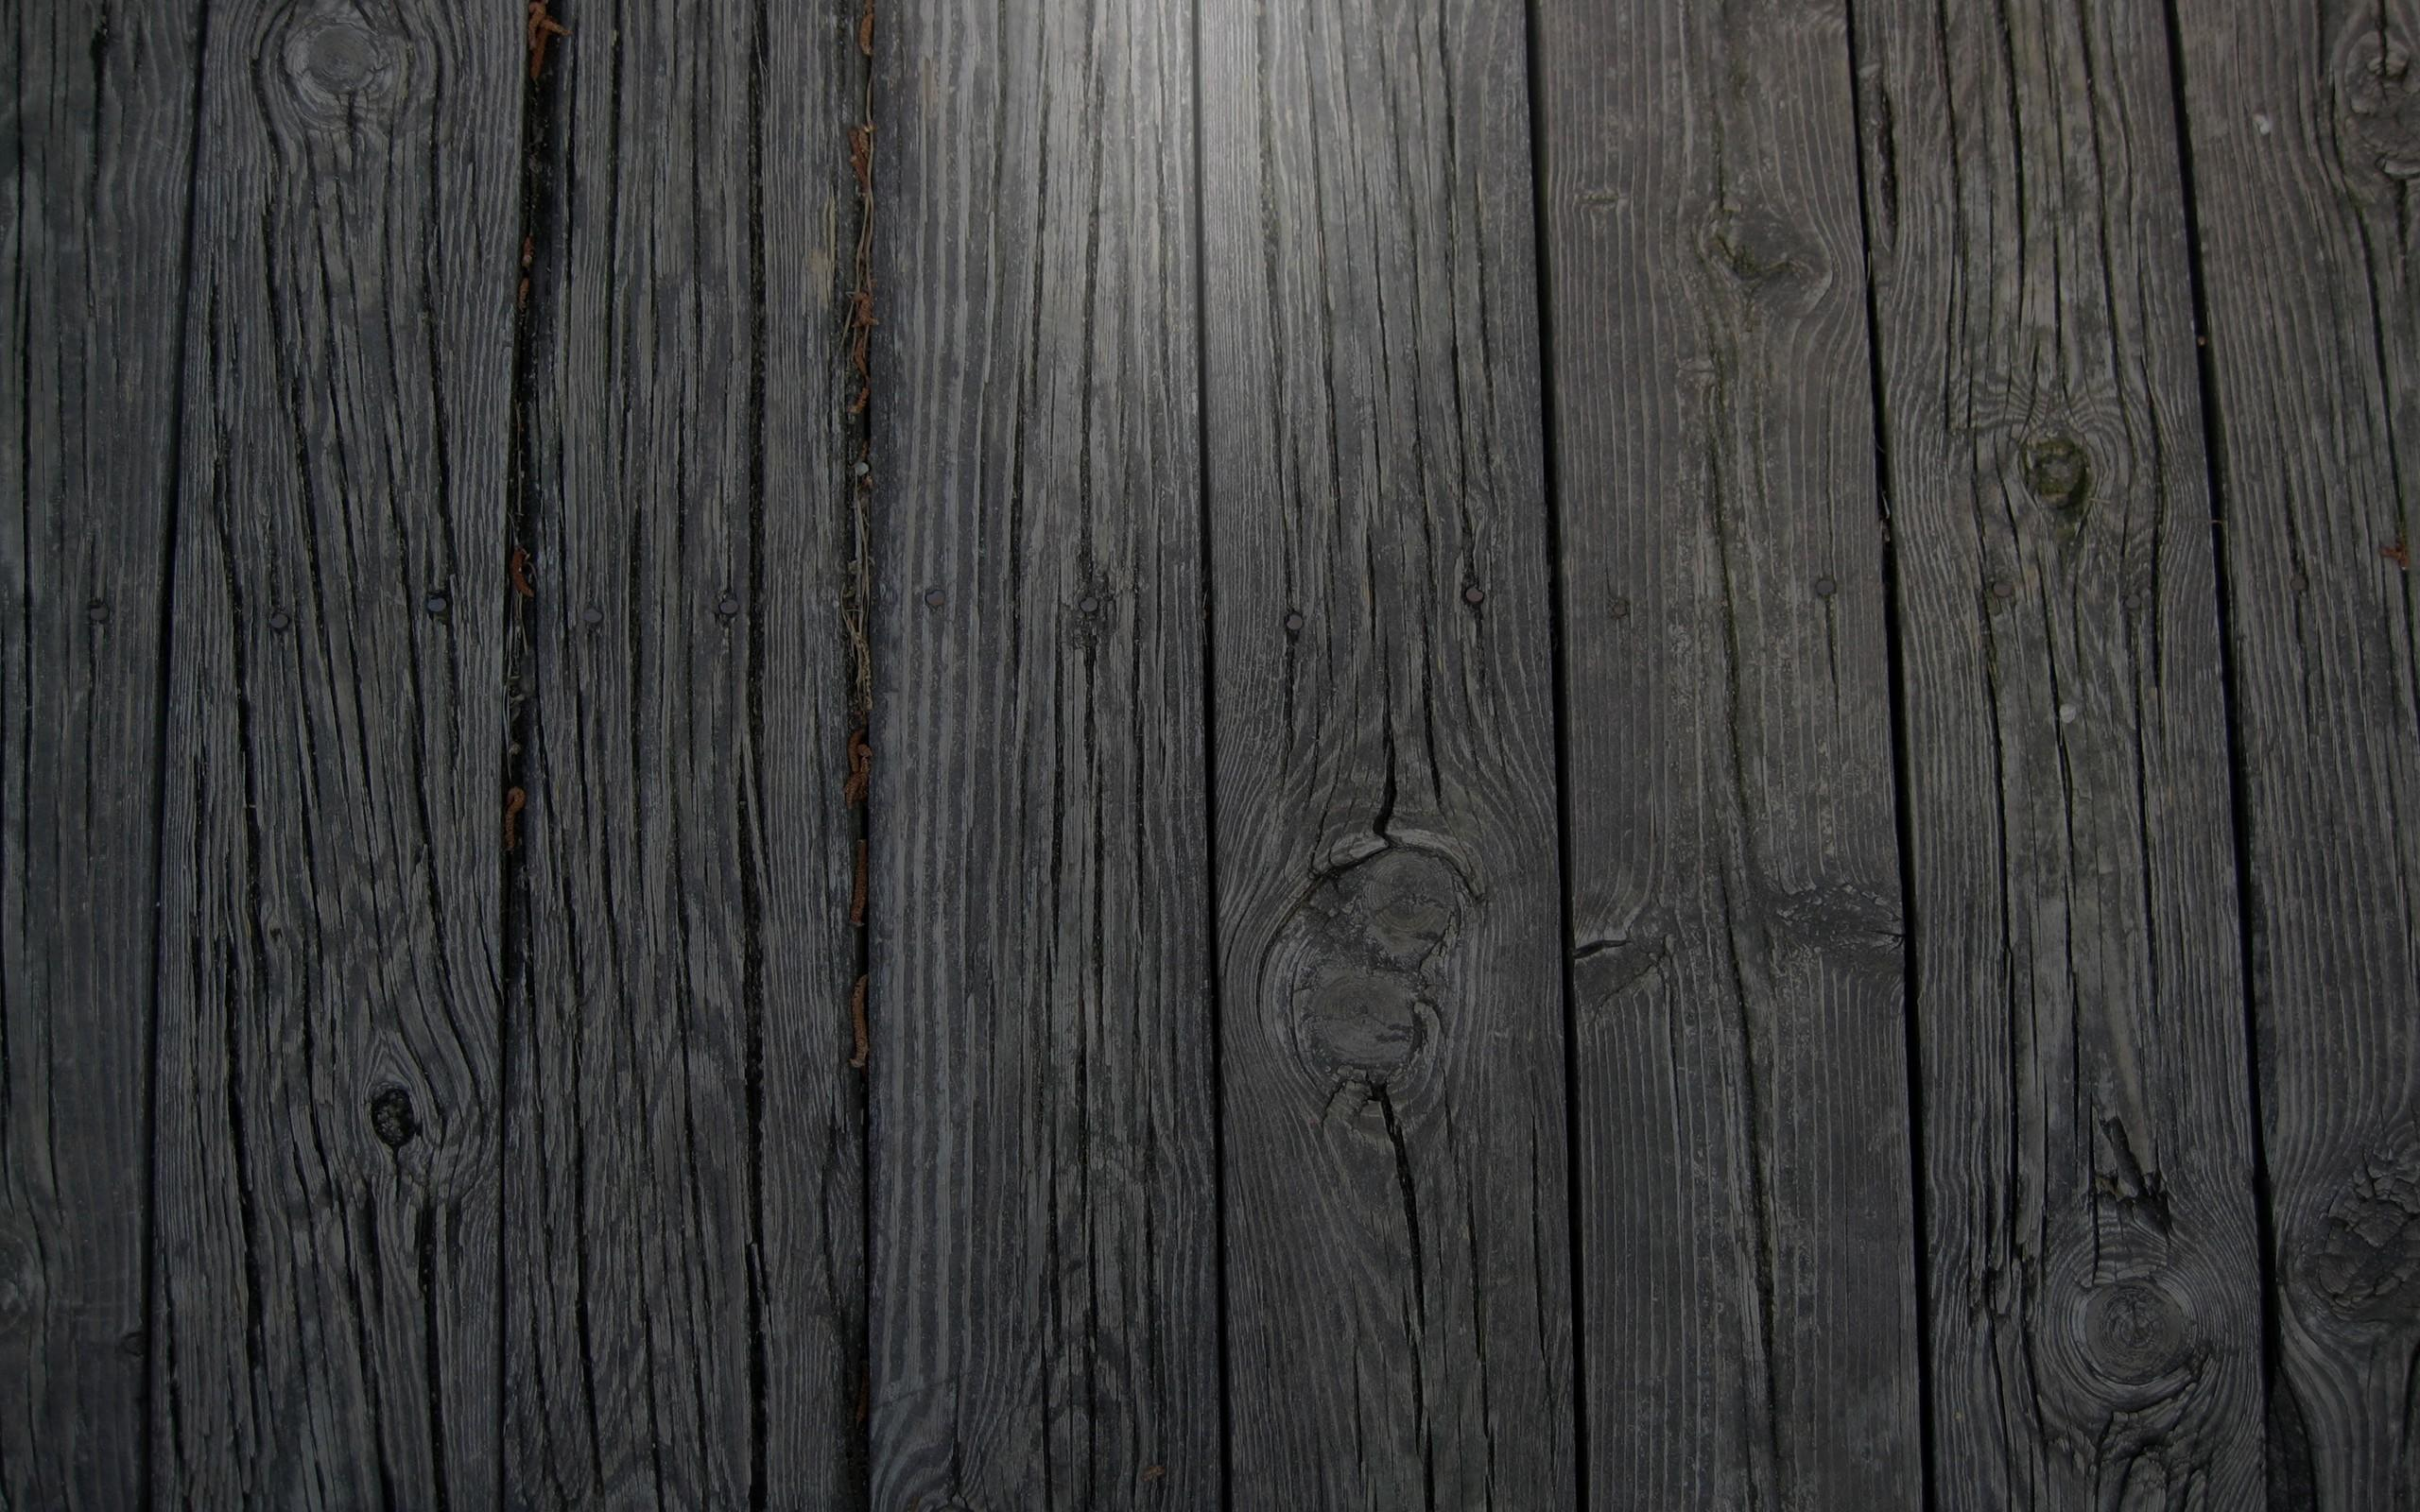 Pattern   Wood Wallpaper. Wood Full HD Wallpaper and Background   2560x1600   ID 78258